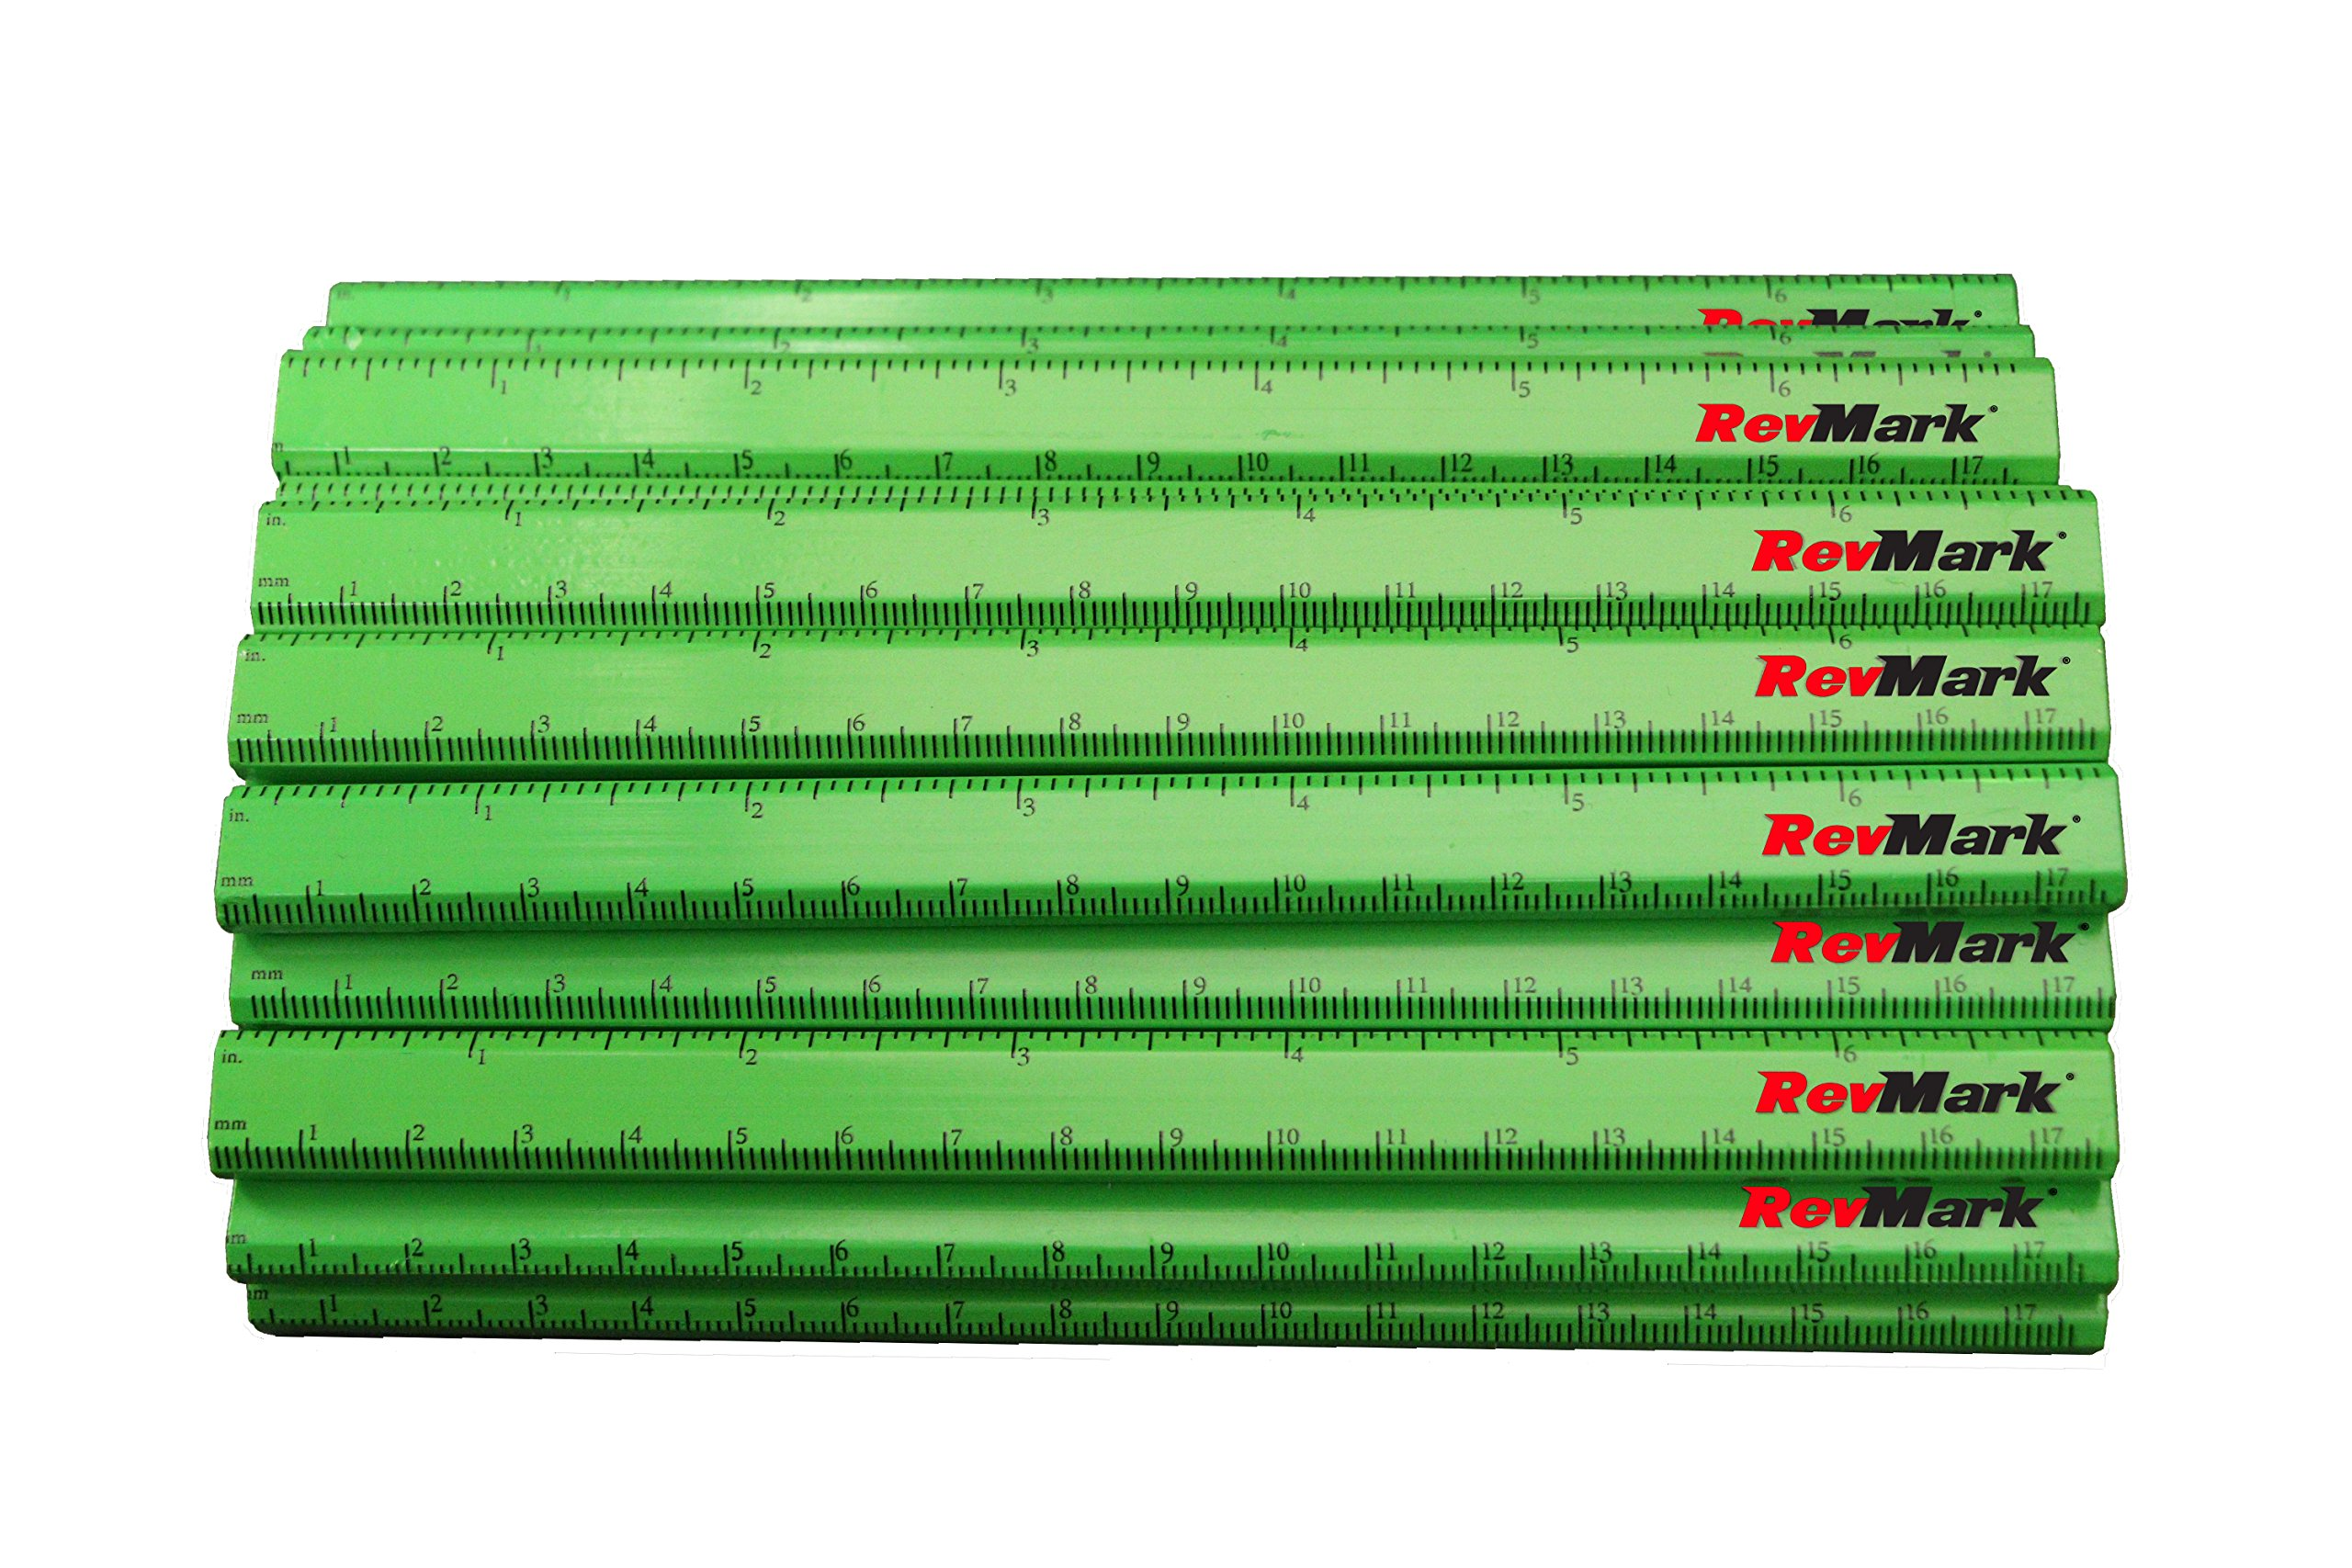 24 Pack - RevMark Carpenter Pencils w/Printed Ruler (Neon Green) by RevMark